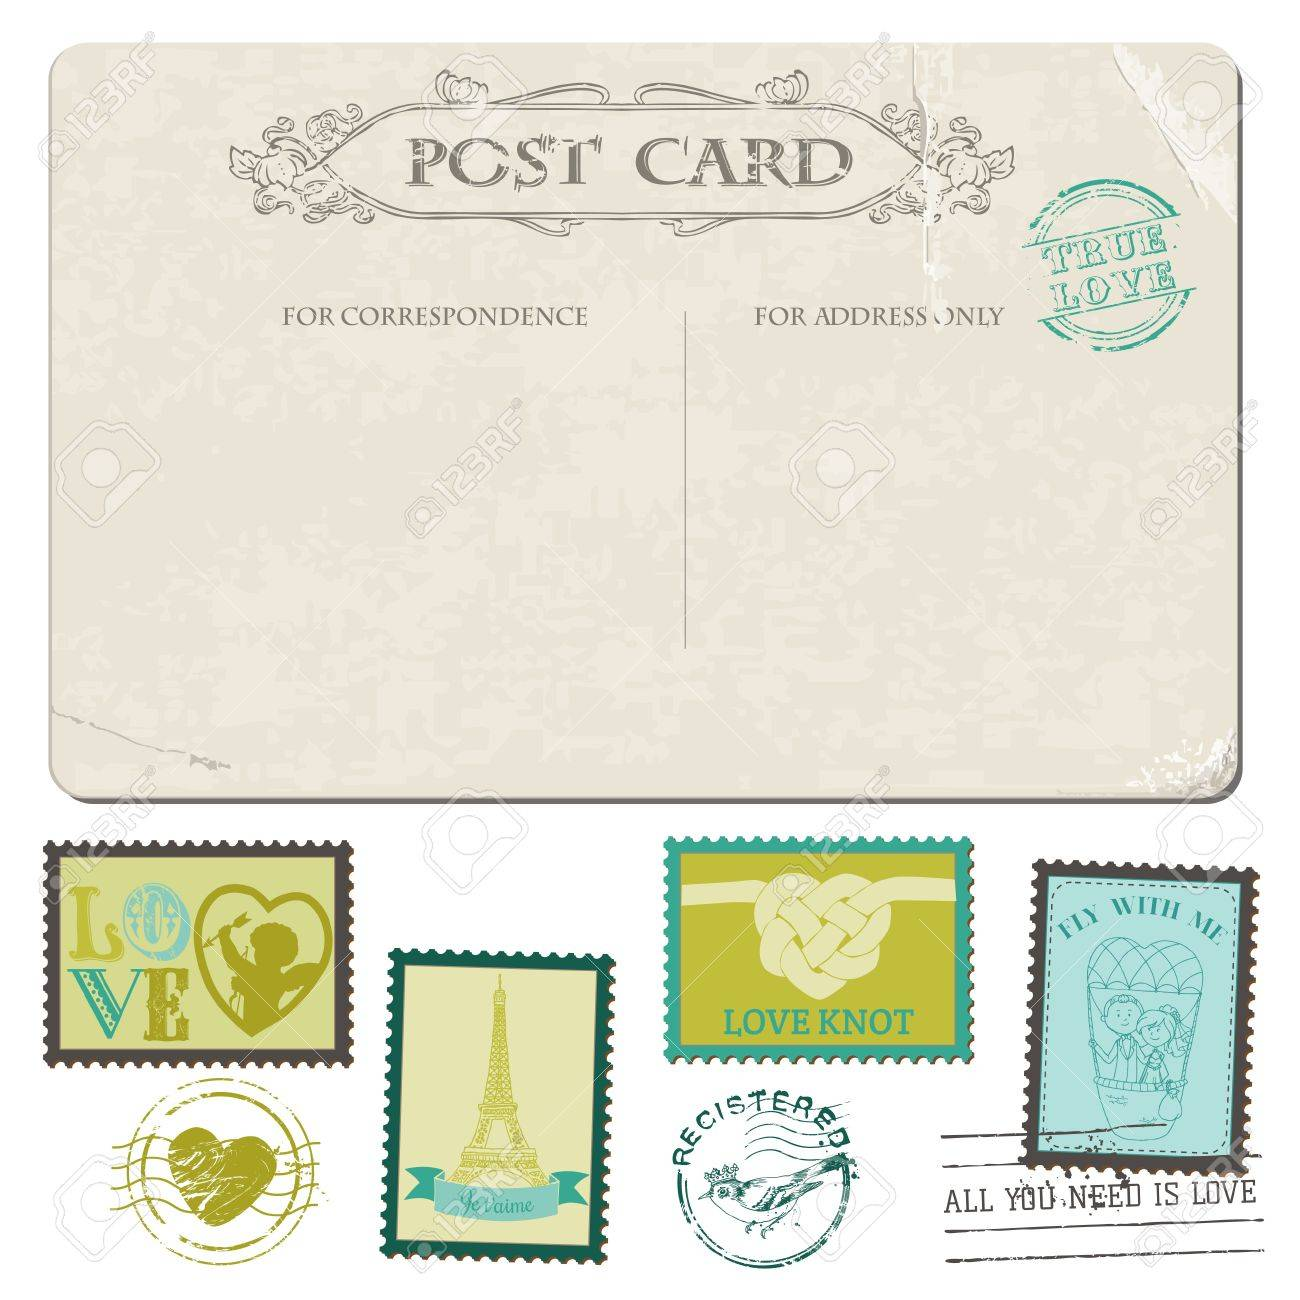 introducing wedding invitation stamps wedding invitation stamps Introducing Wedding Invitation Rubber Stamps